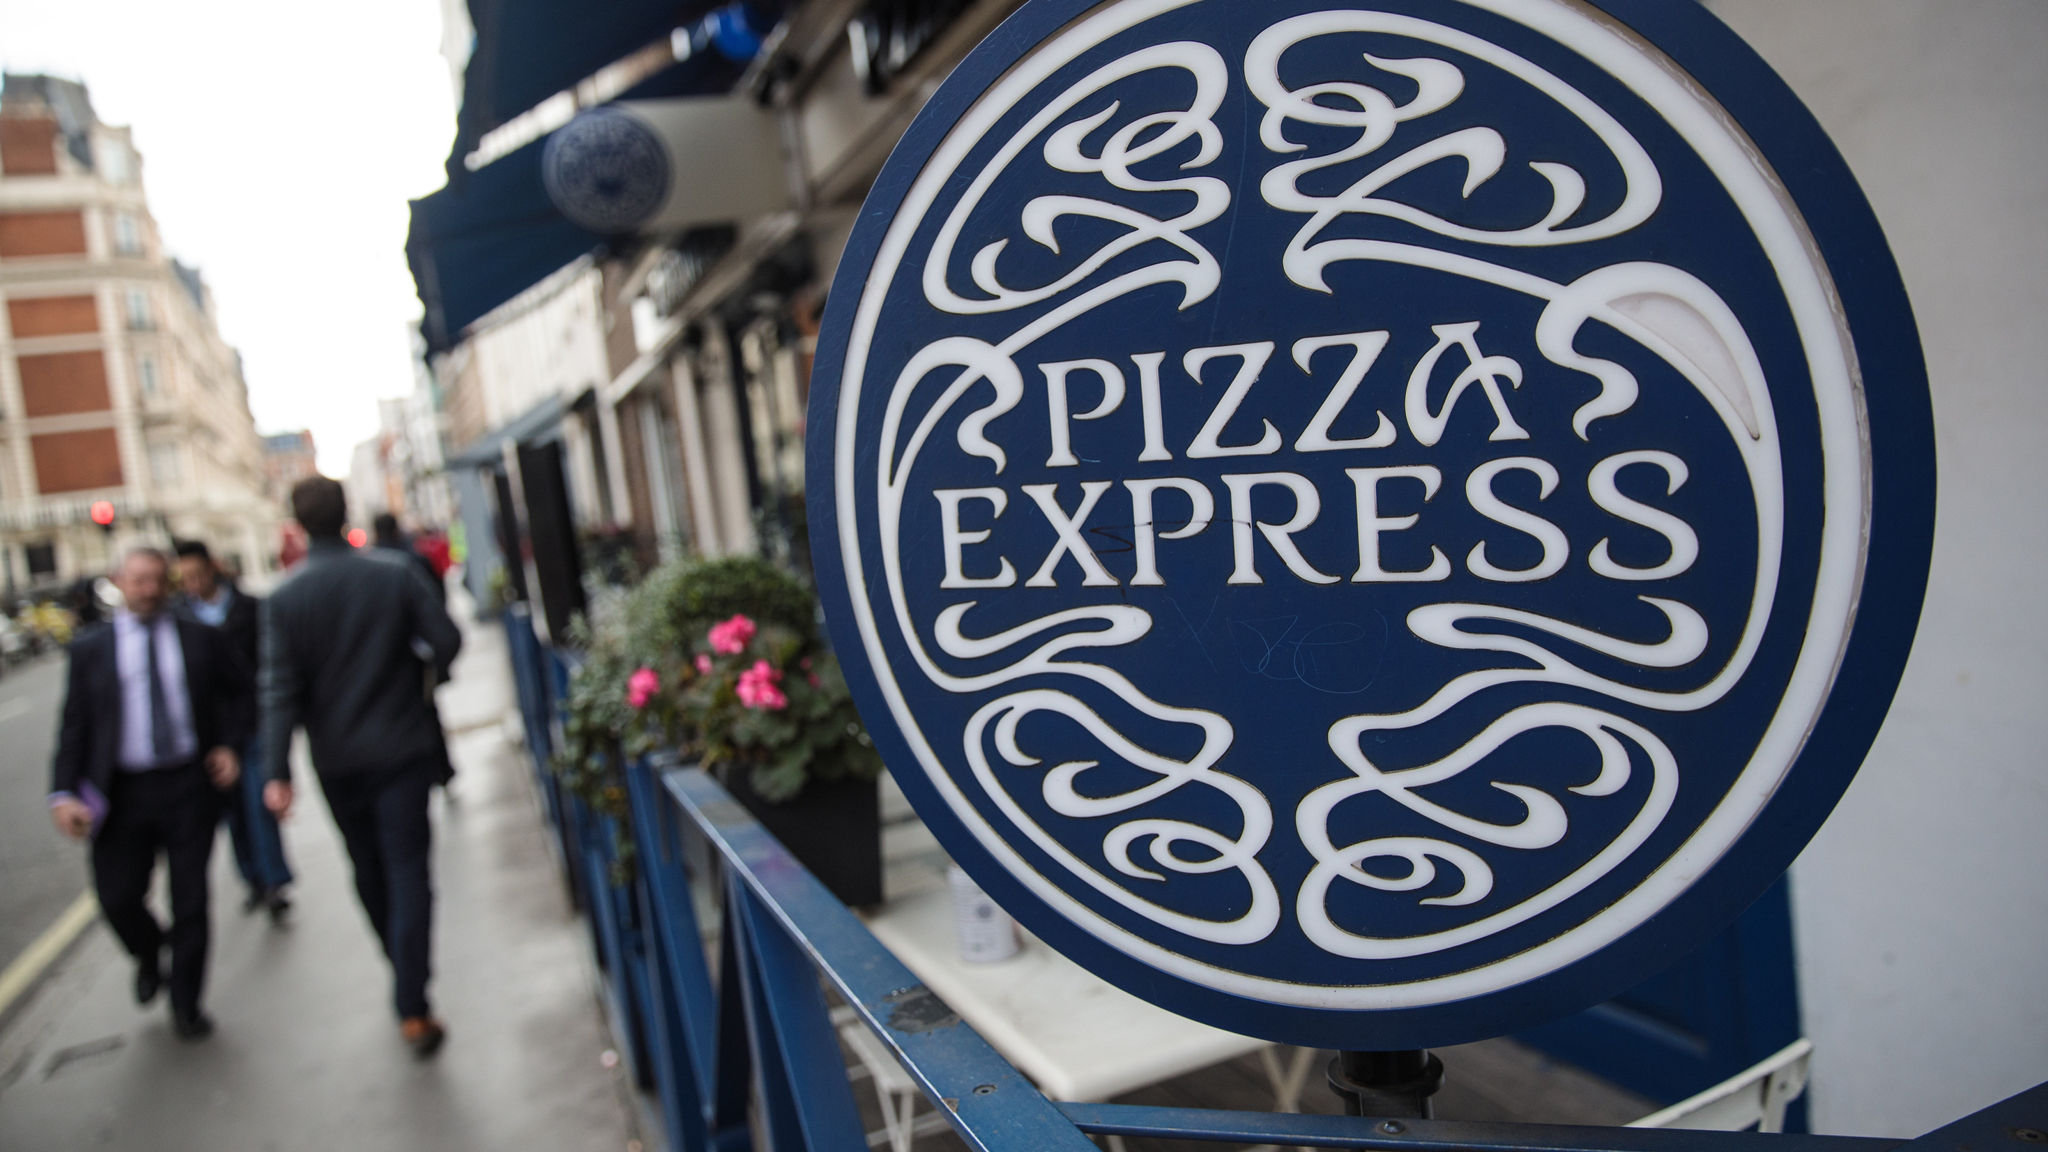 Pizzaexpress Debt In The Spotlight Financial Times